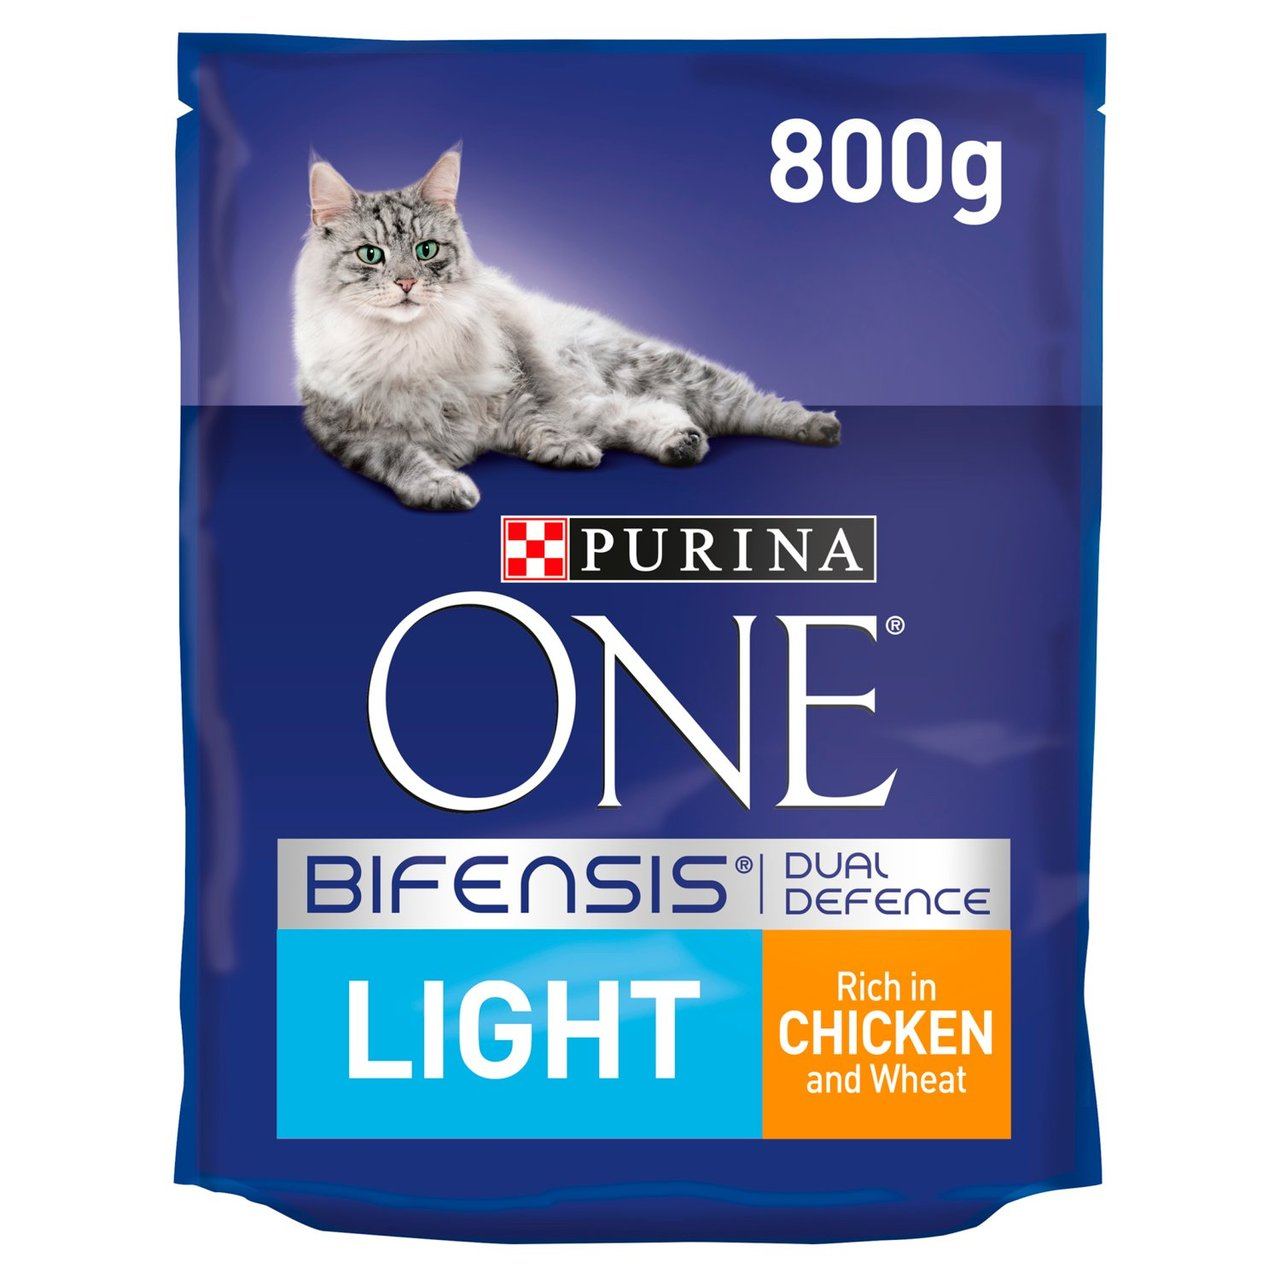 An image of Purina One Light Cat Chicken & Wheat